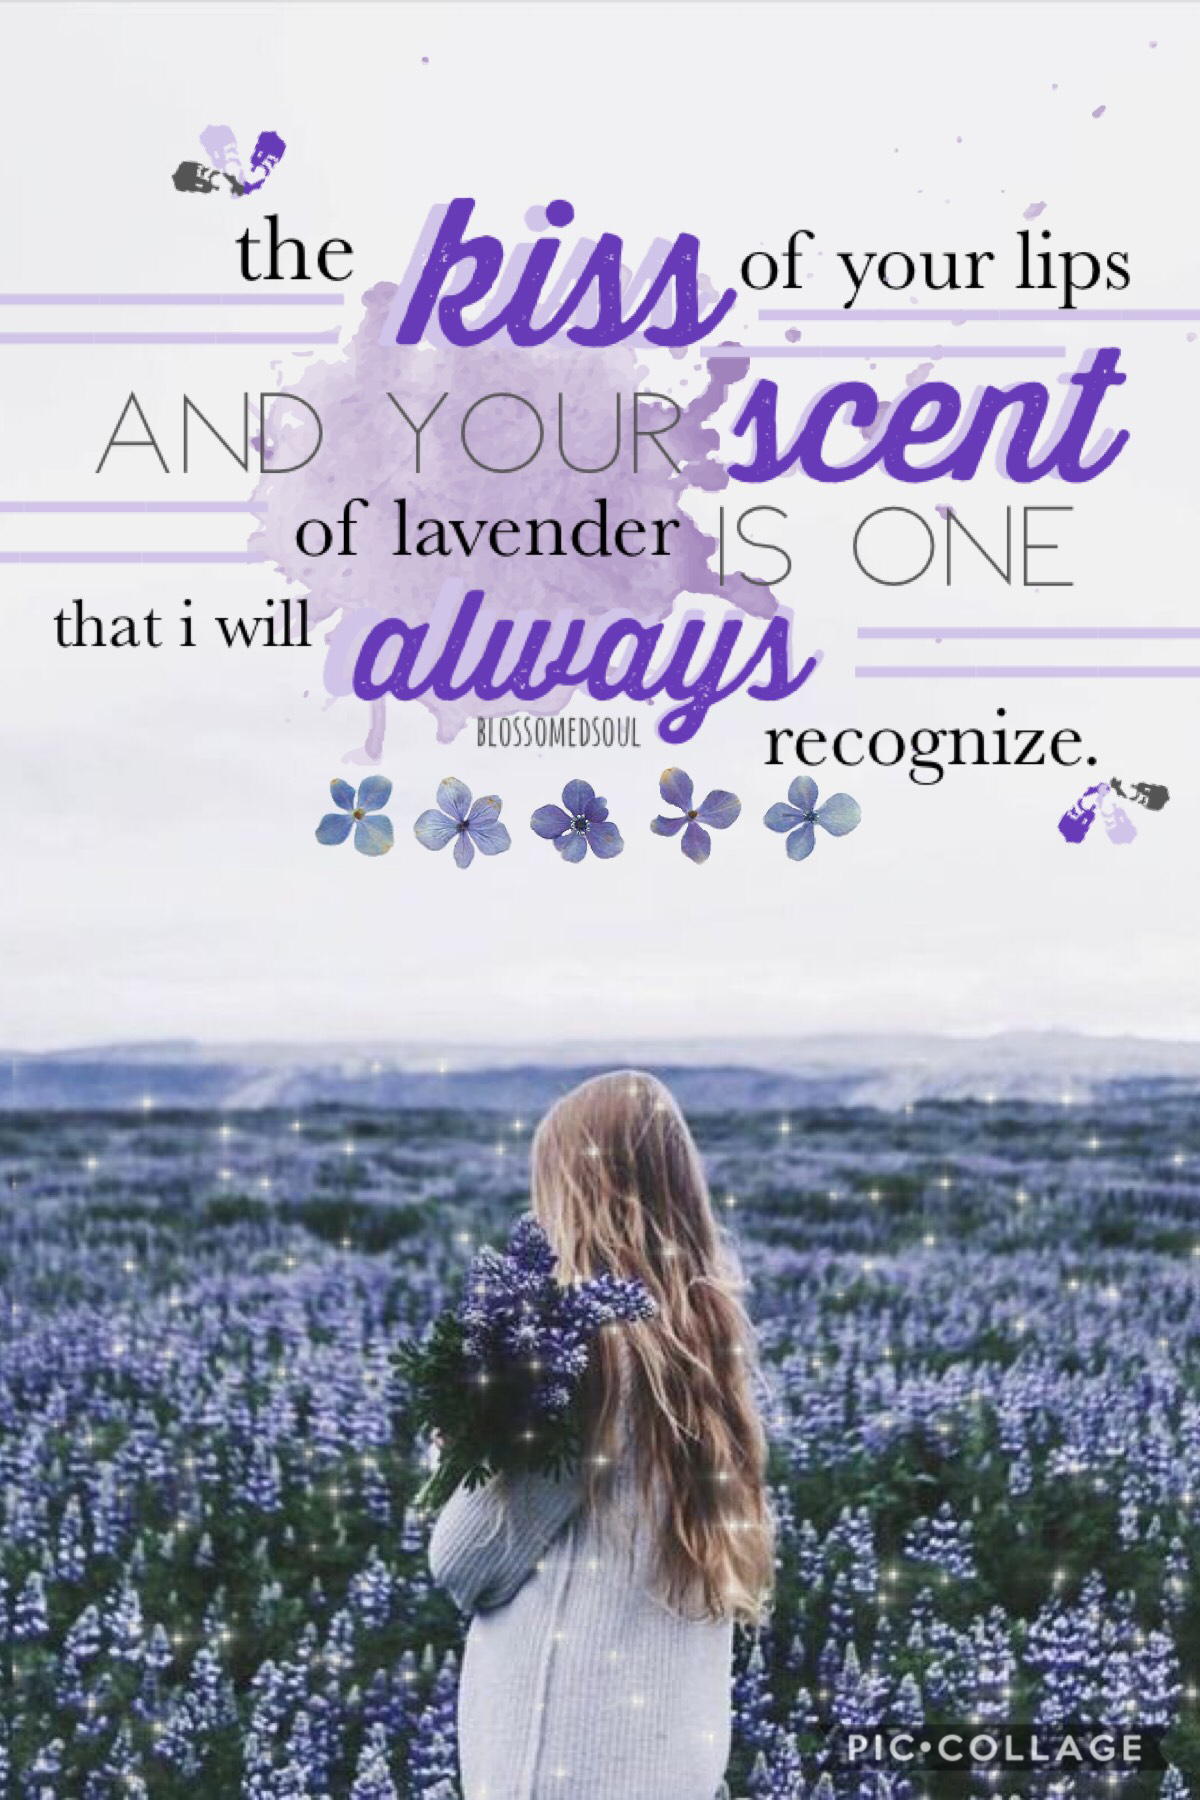 t a p  sorry that i haven't posted in forever! here's a quick little collage i worked on 🙃 quote by me! ♥️ qotd: do you like the smell of lavender? aotd: not really, but it's a pretty flower 🌿